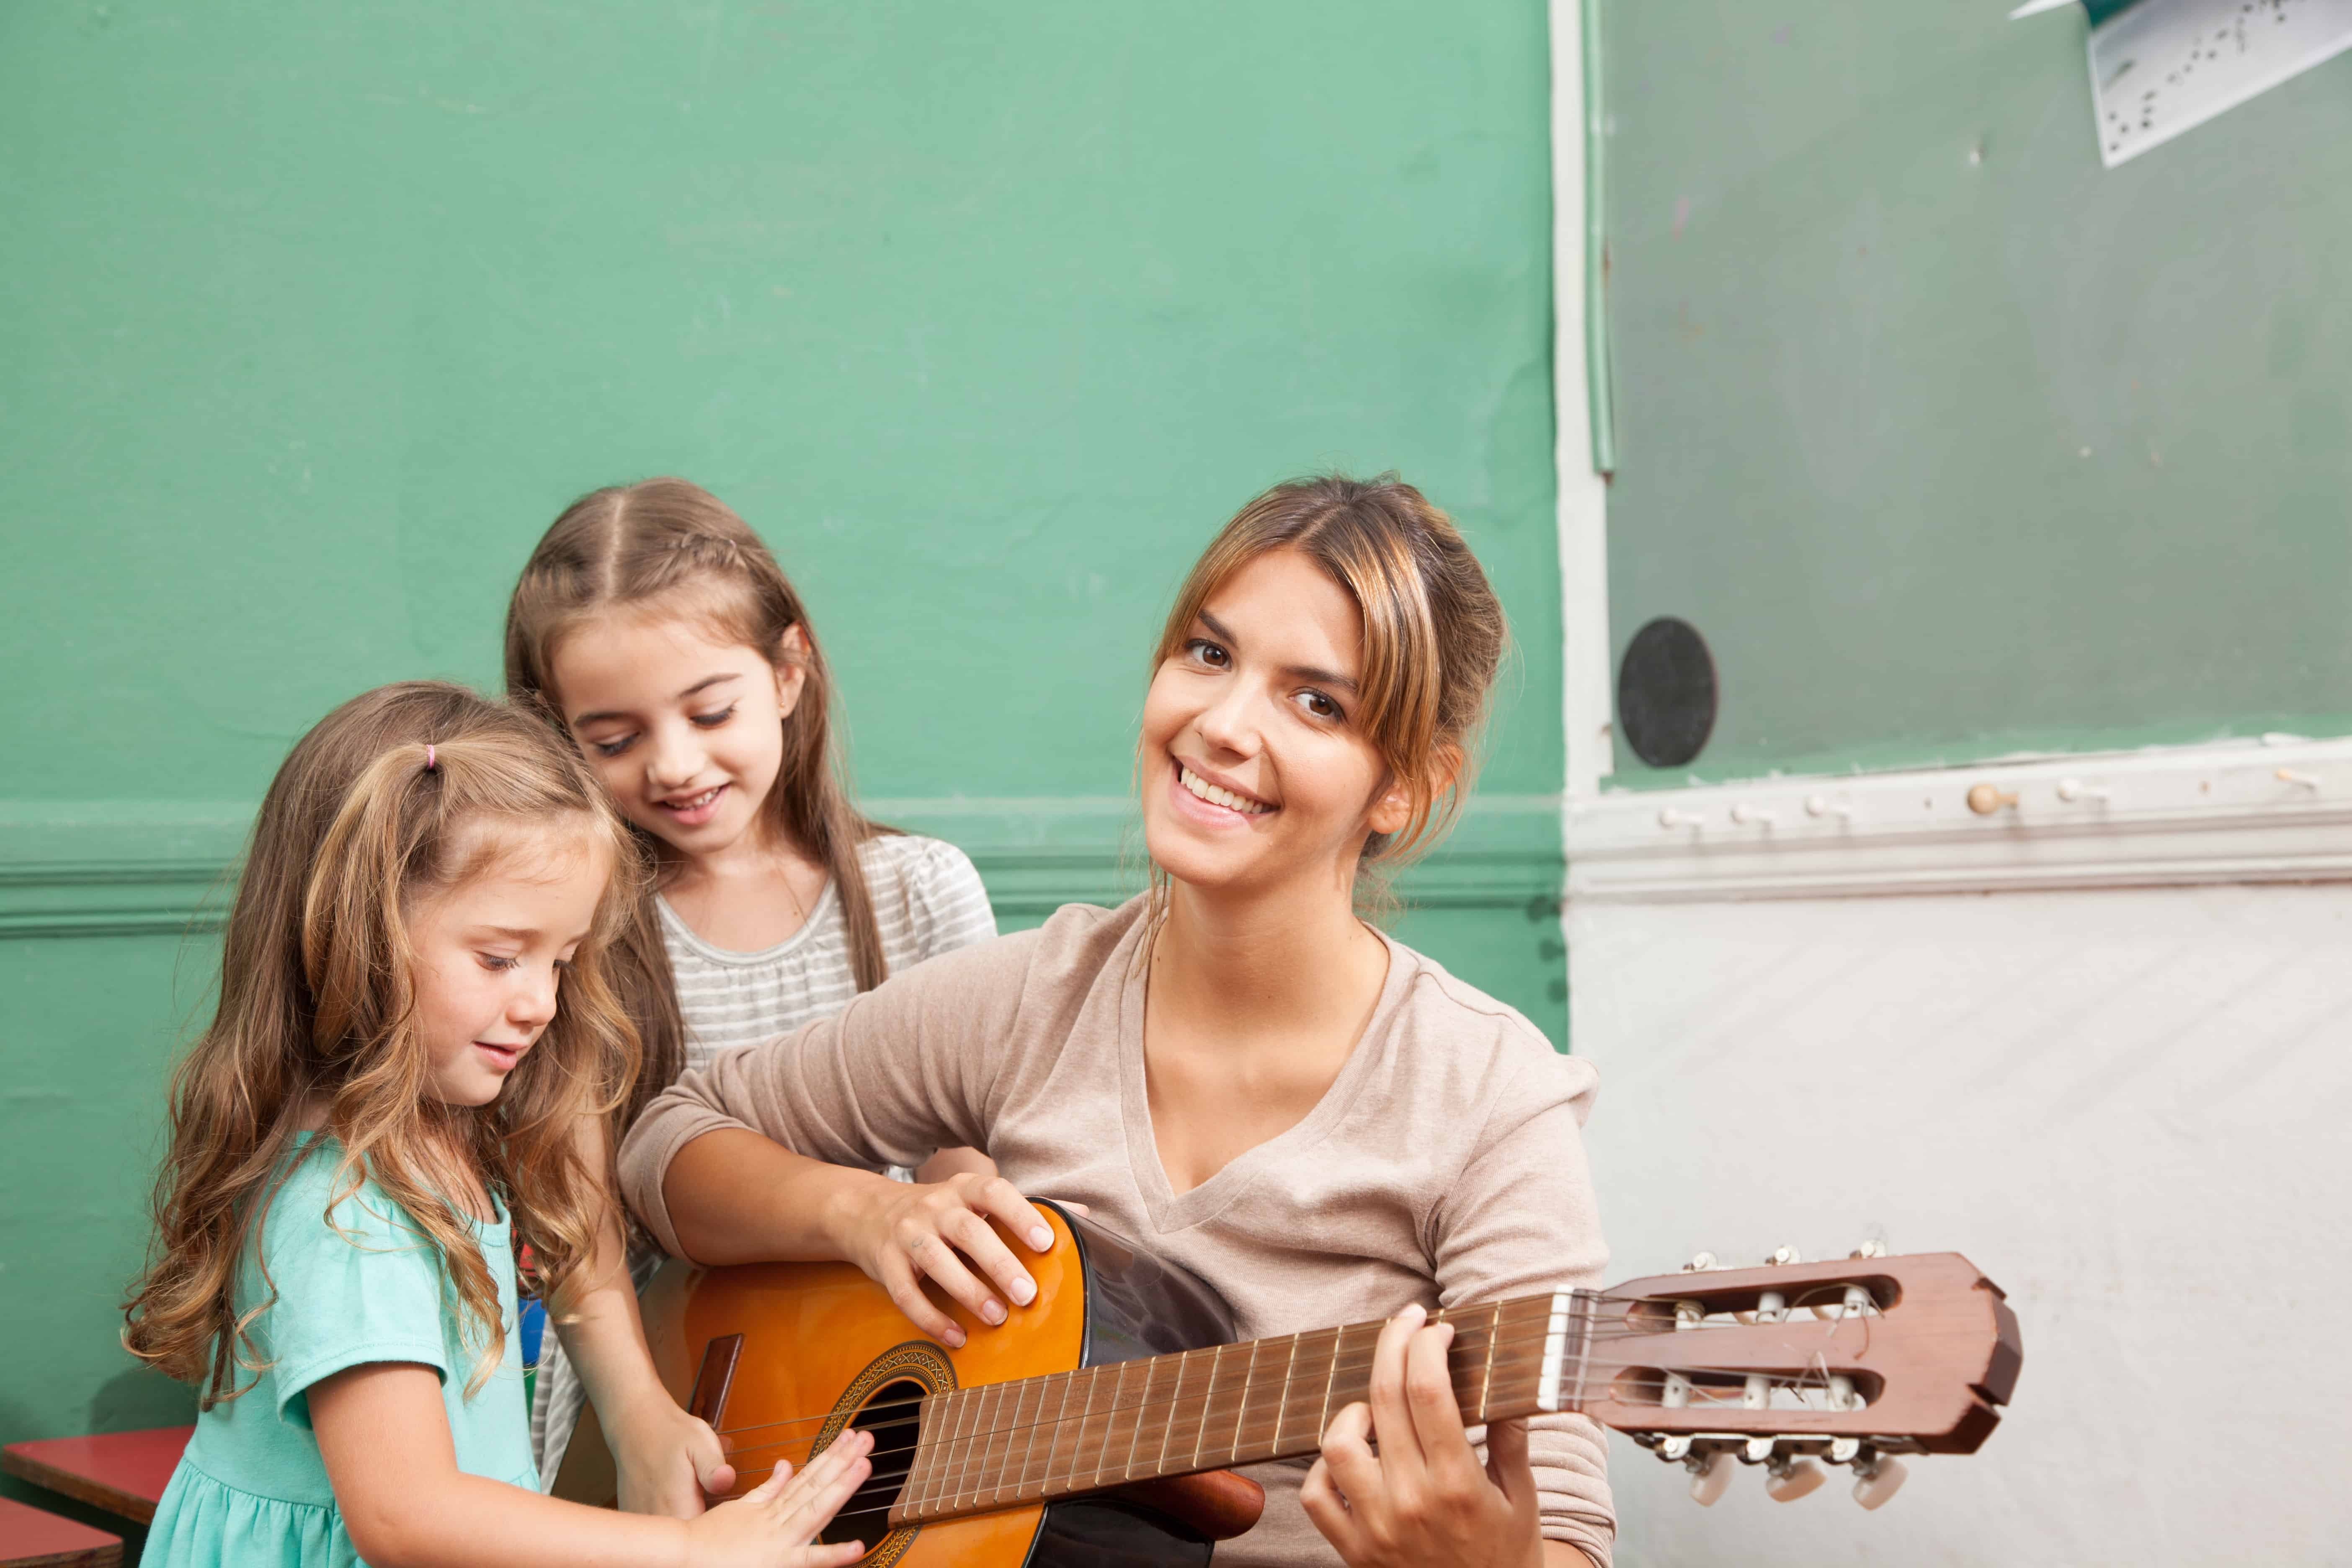 Four Ways to Develop Your Child's Musical Talents Many great musicians started at a young age. If your child is interested in a musical instrument, it is important for them to start developing their talents as soon as possible.